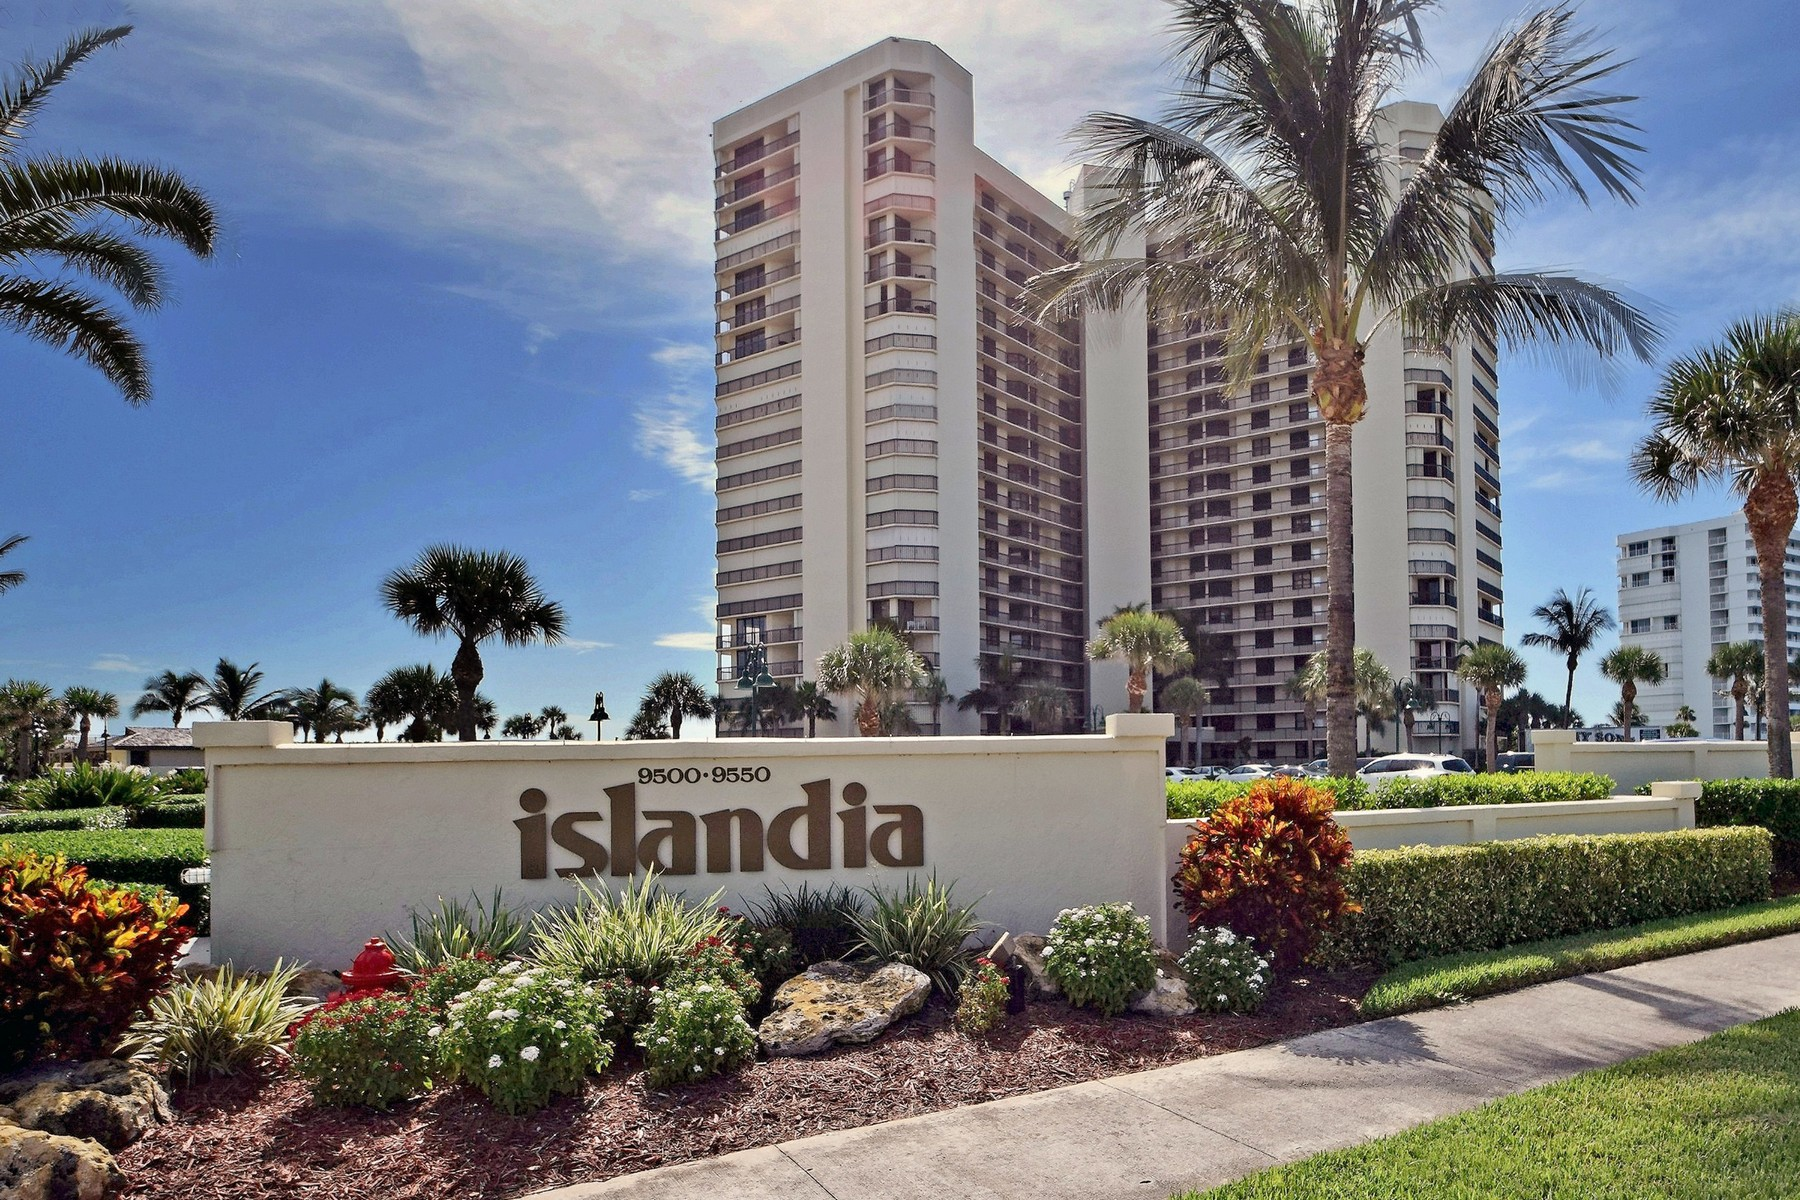 Condominium for Sale at Islandia Penthouse Condo 9500 S Ocean Drive PH-08 Jensen Beach, Florida 34957 United States